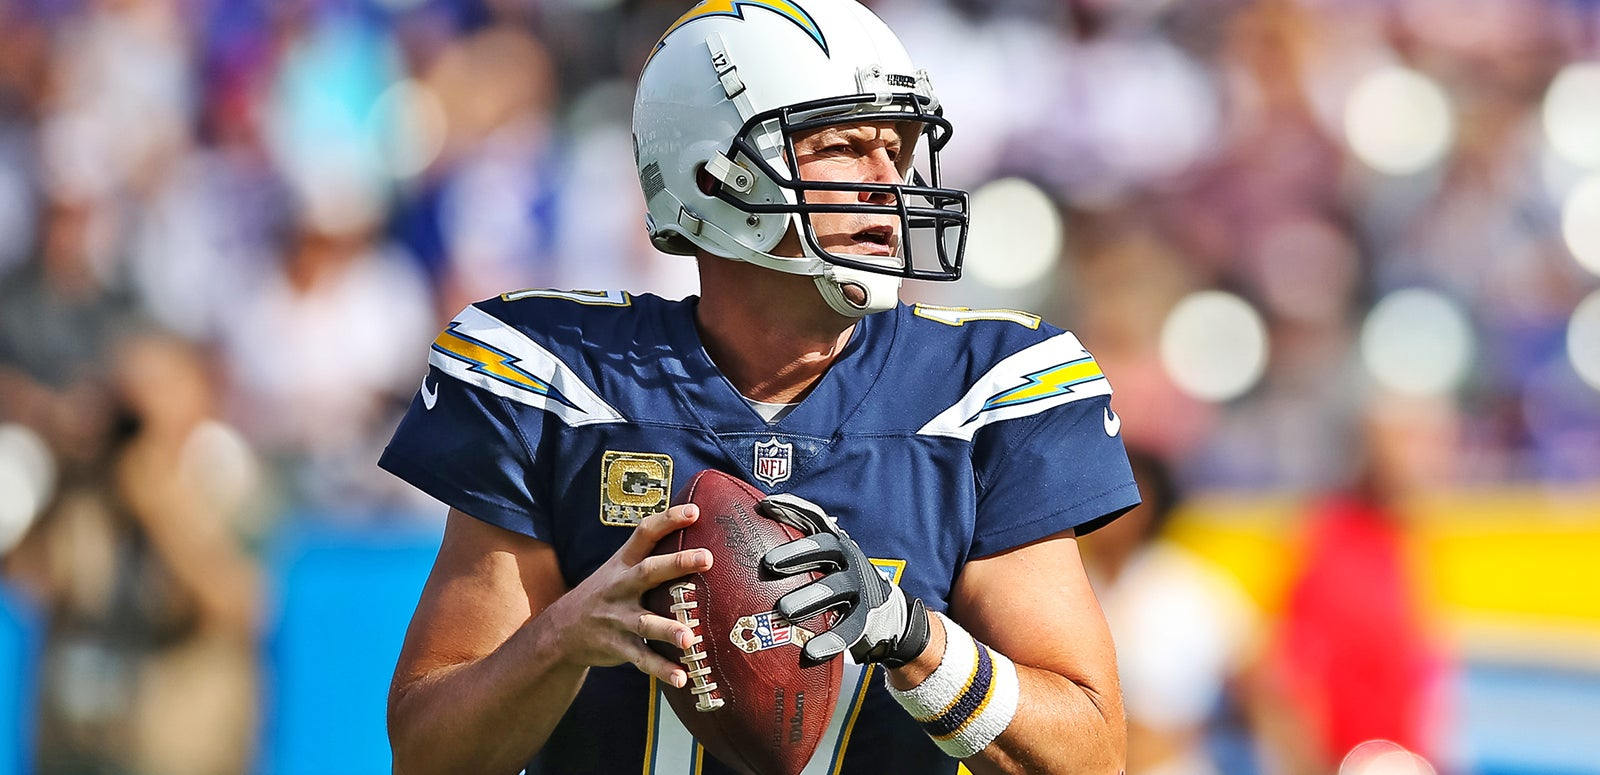 NFL: Los Angeles Chargers vs. Baltimore Ravens